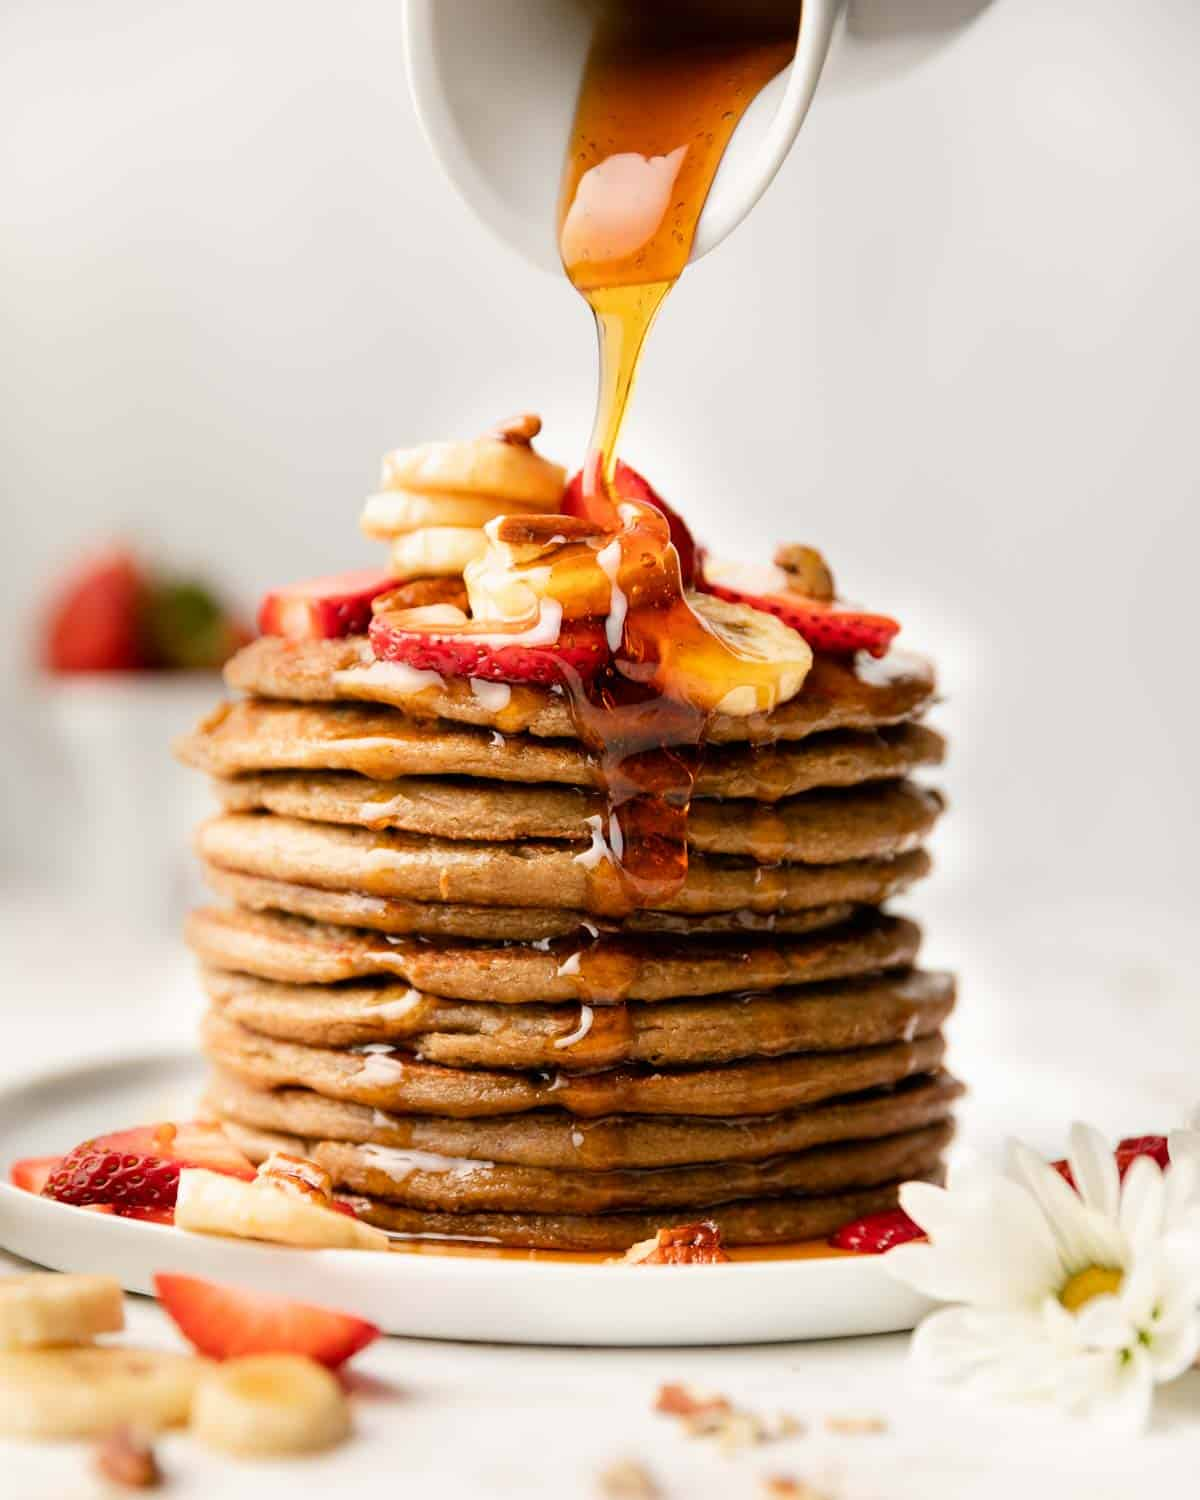 stack of pancakes with syrup being poured on top